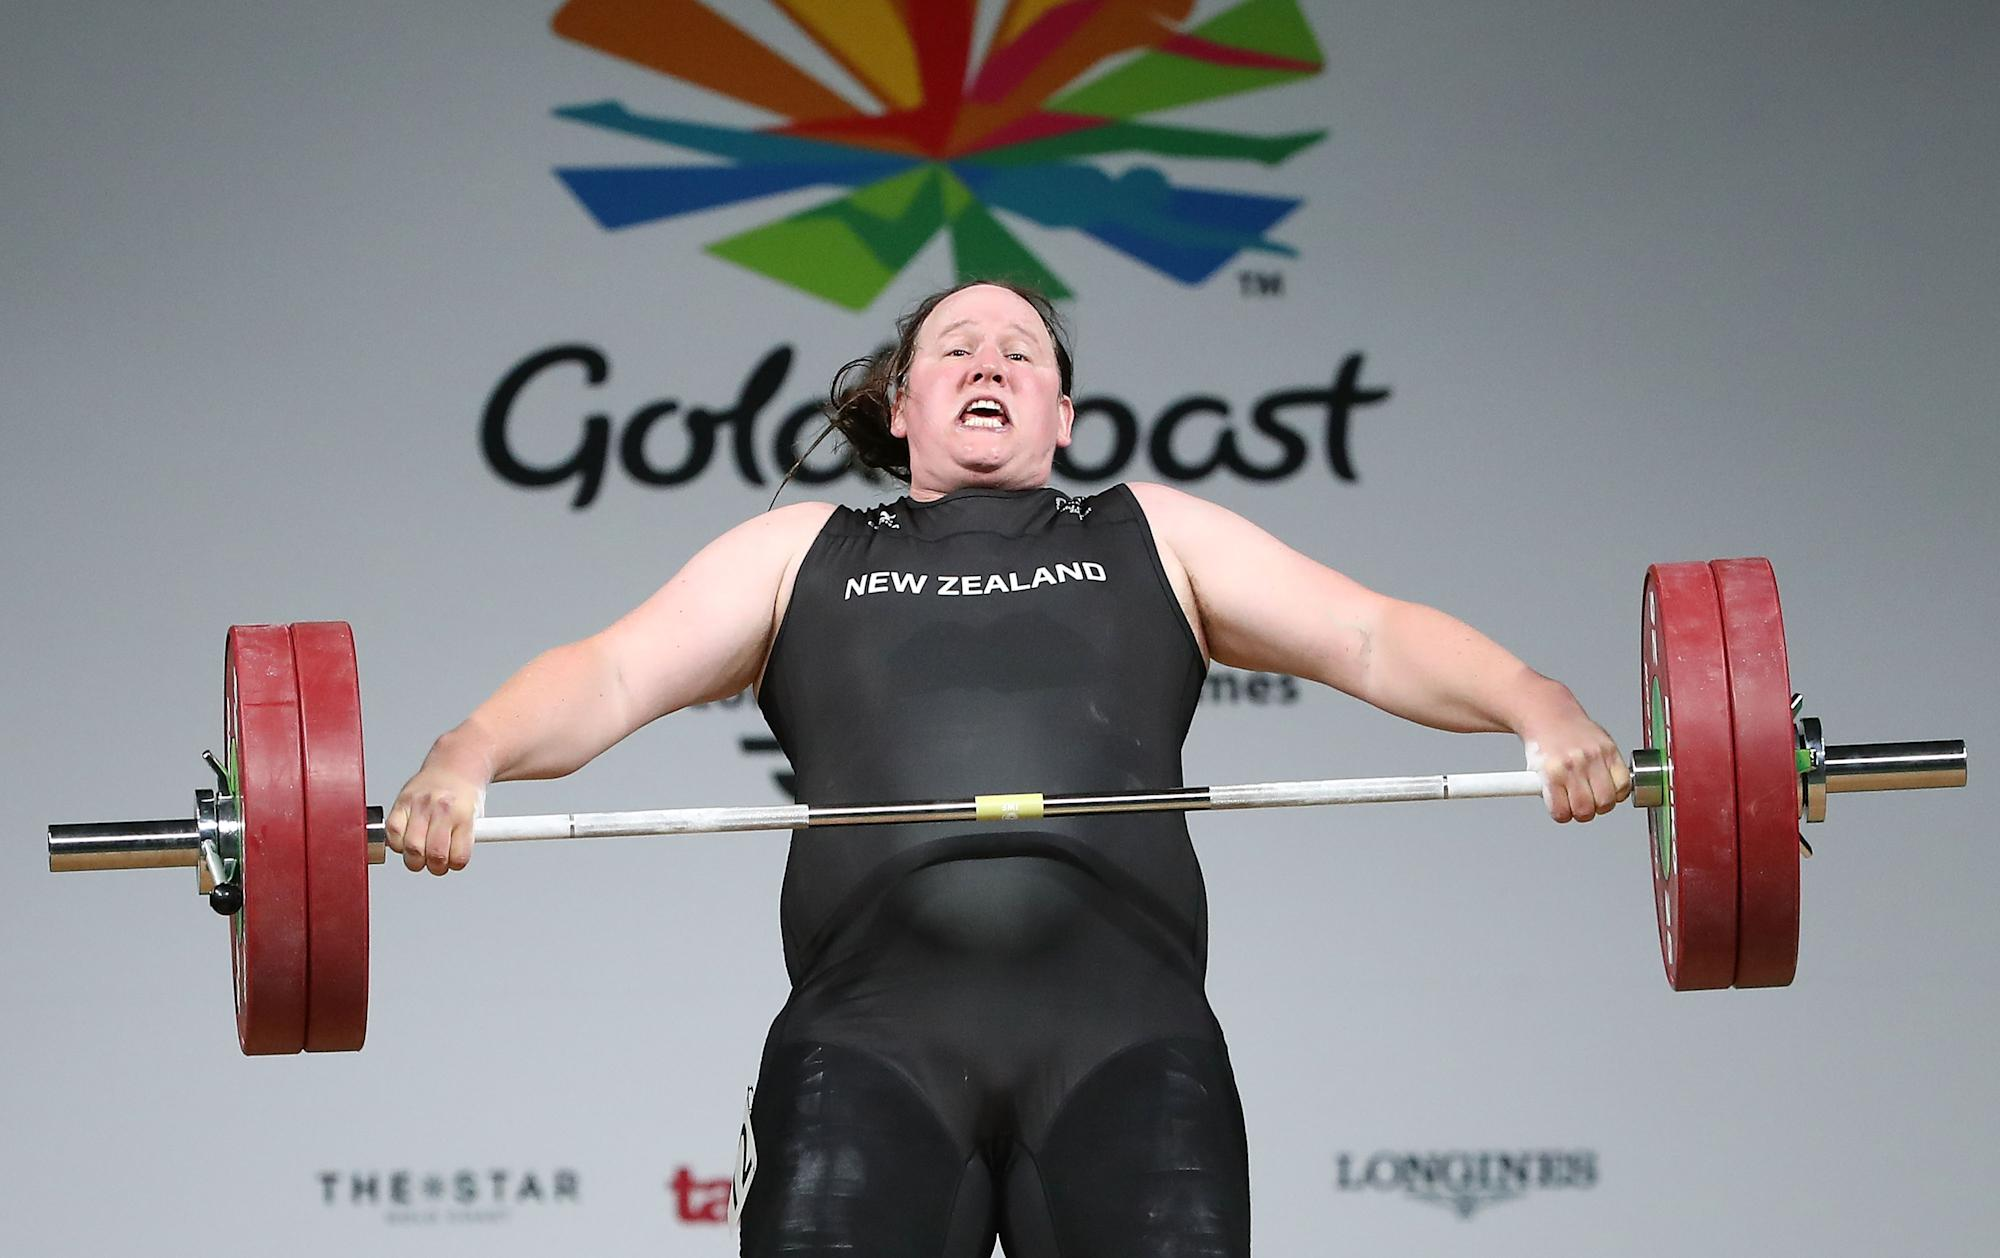 A transgender weightlifter will make history at the Olympics. Is her inclusion fair?